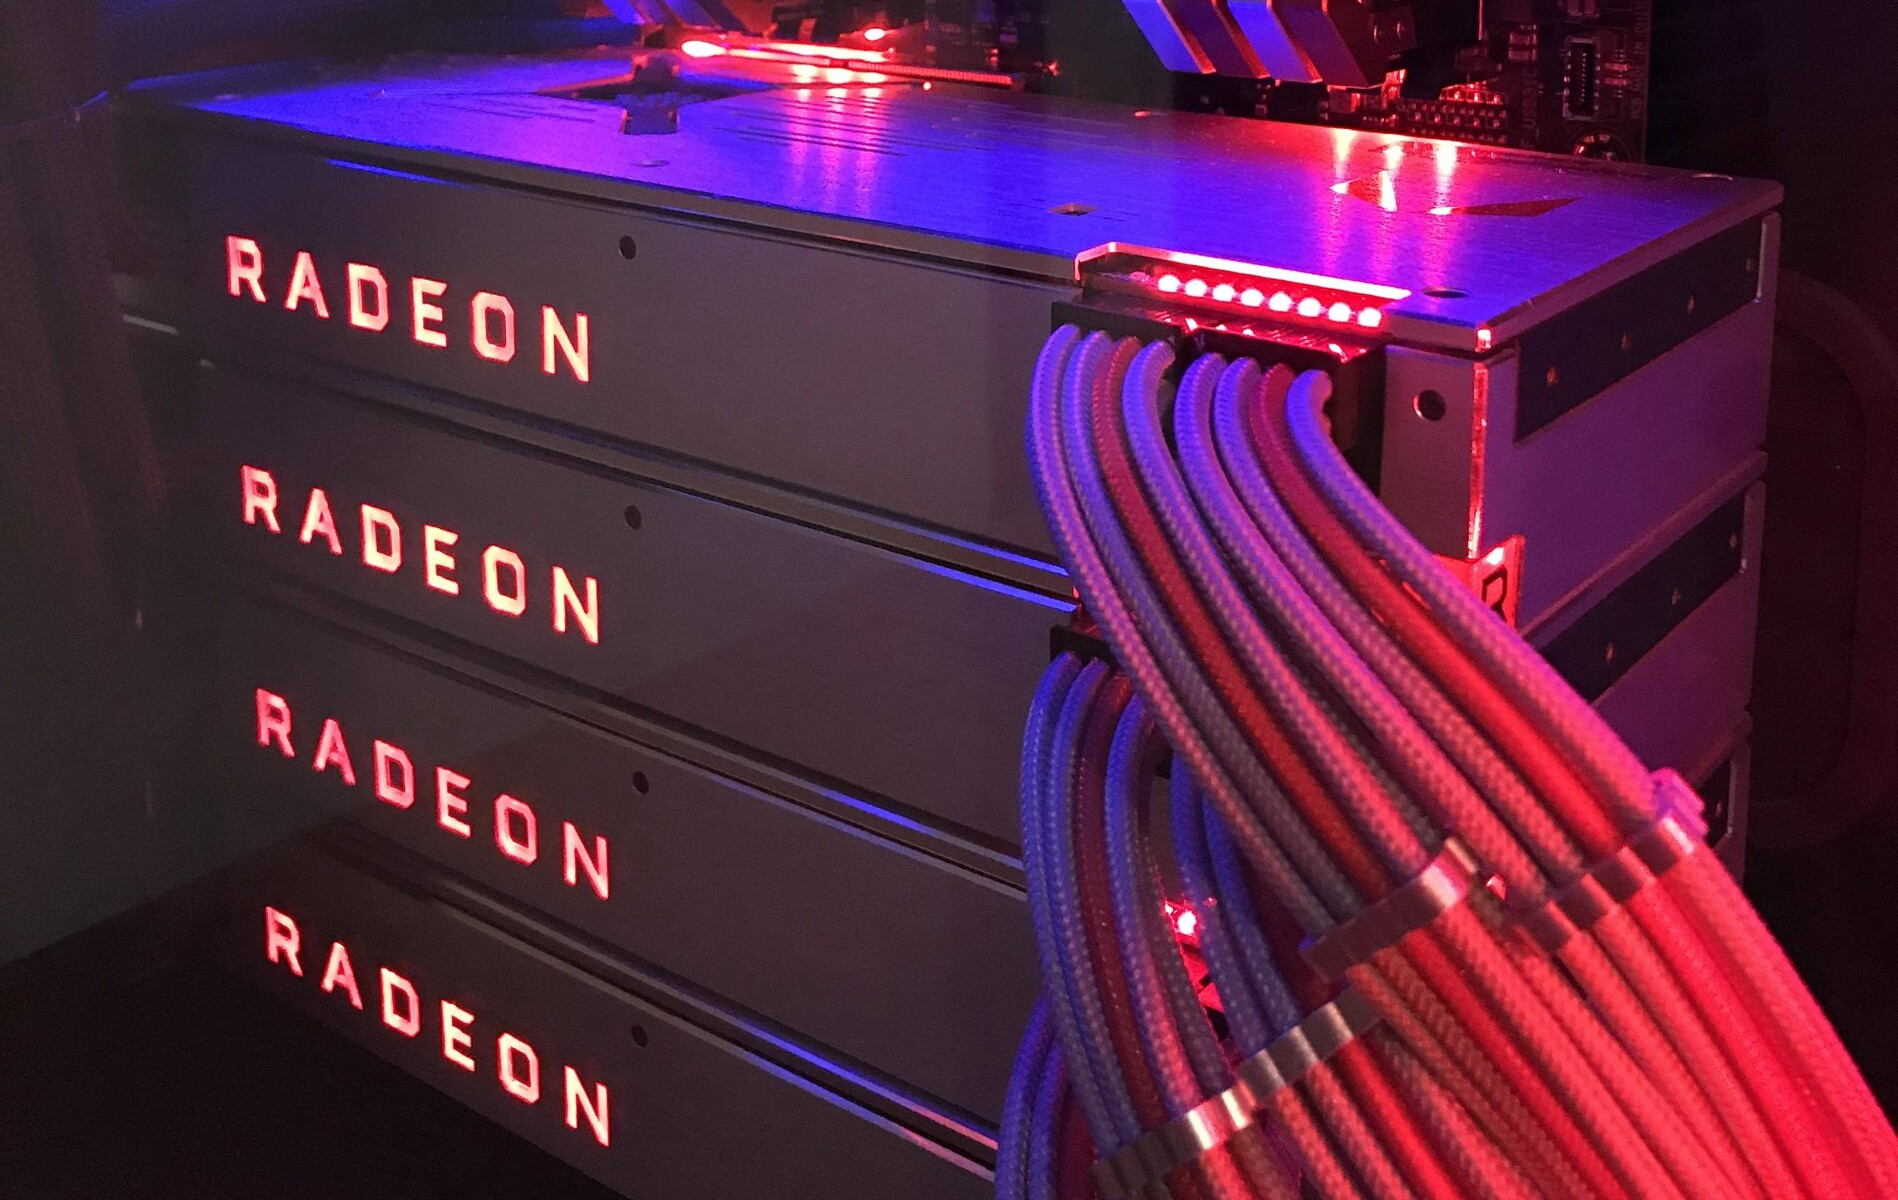 AMD fan amazes the red team with custom build PC featuring